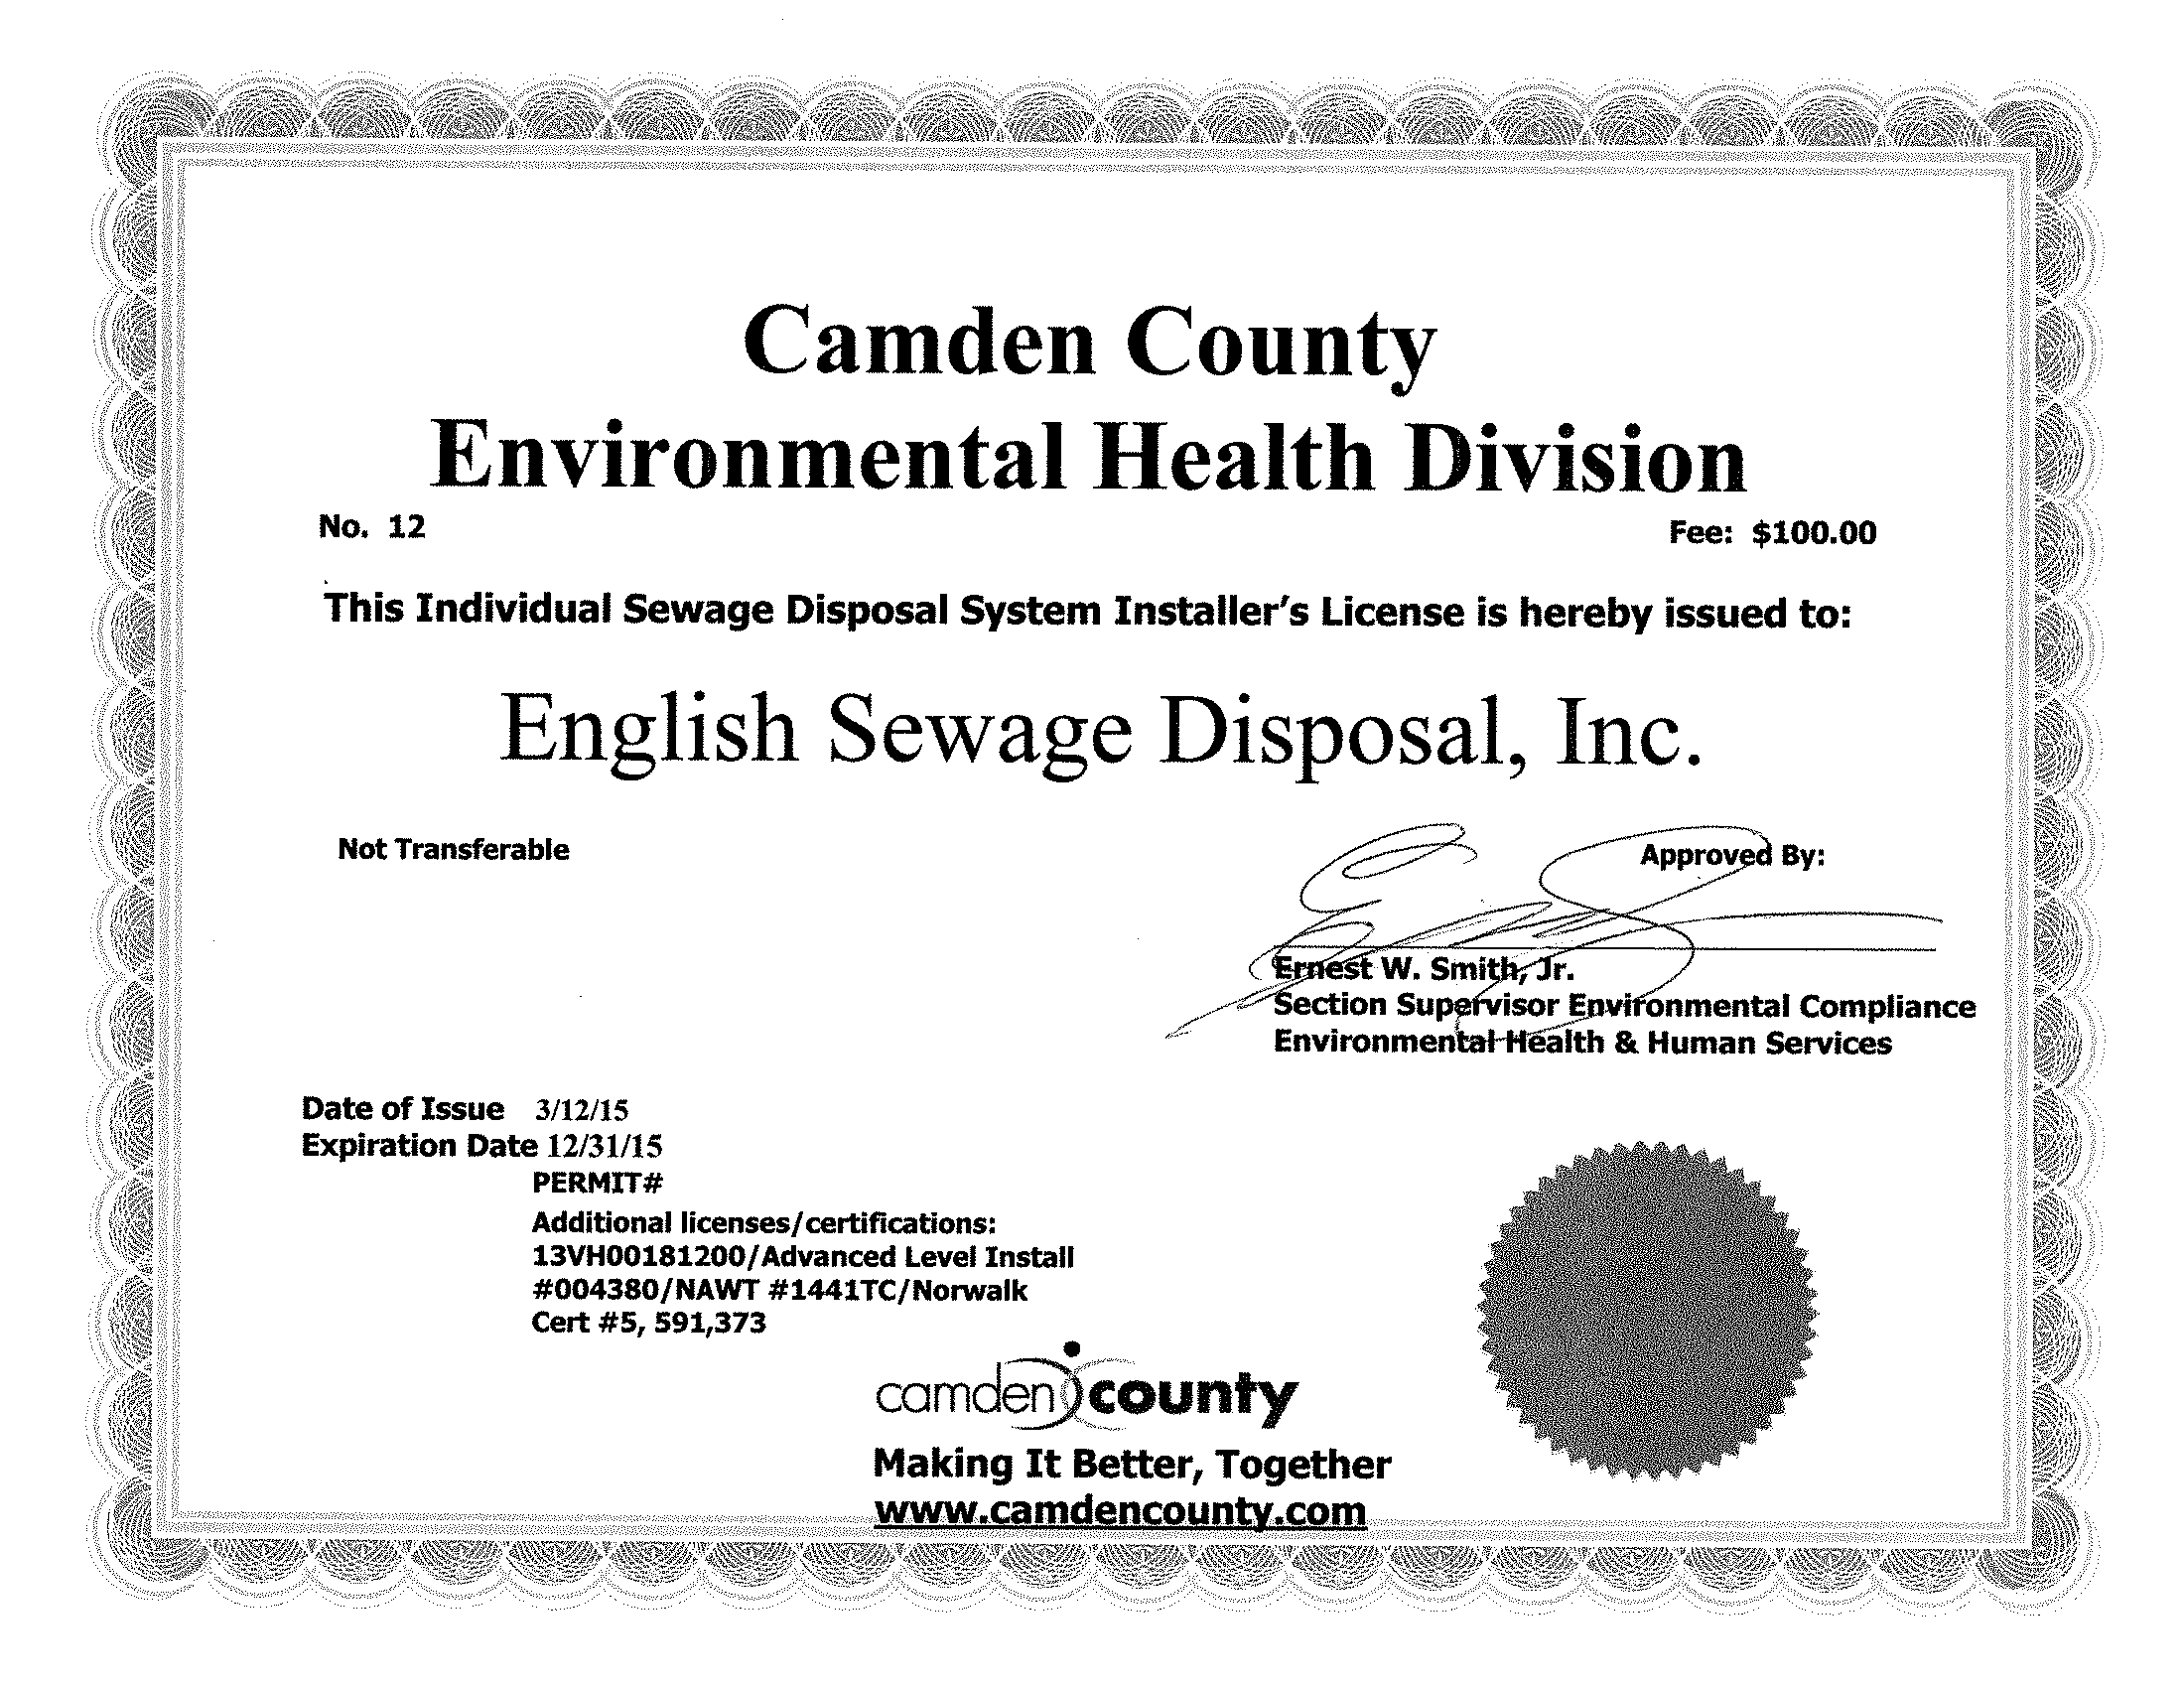 CamdenCoHD ISDSI License 2015